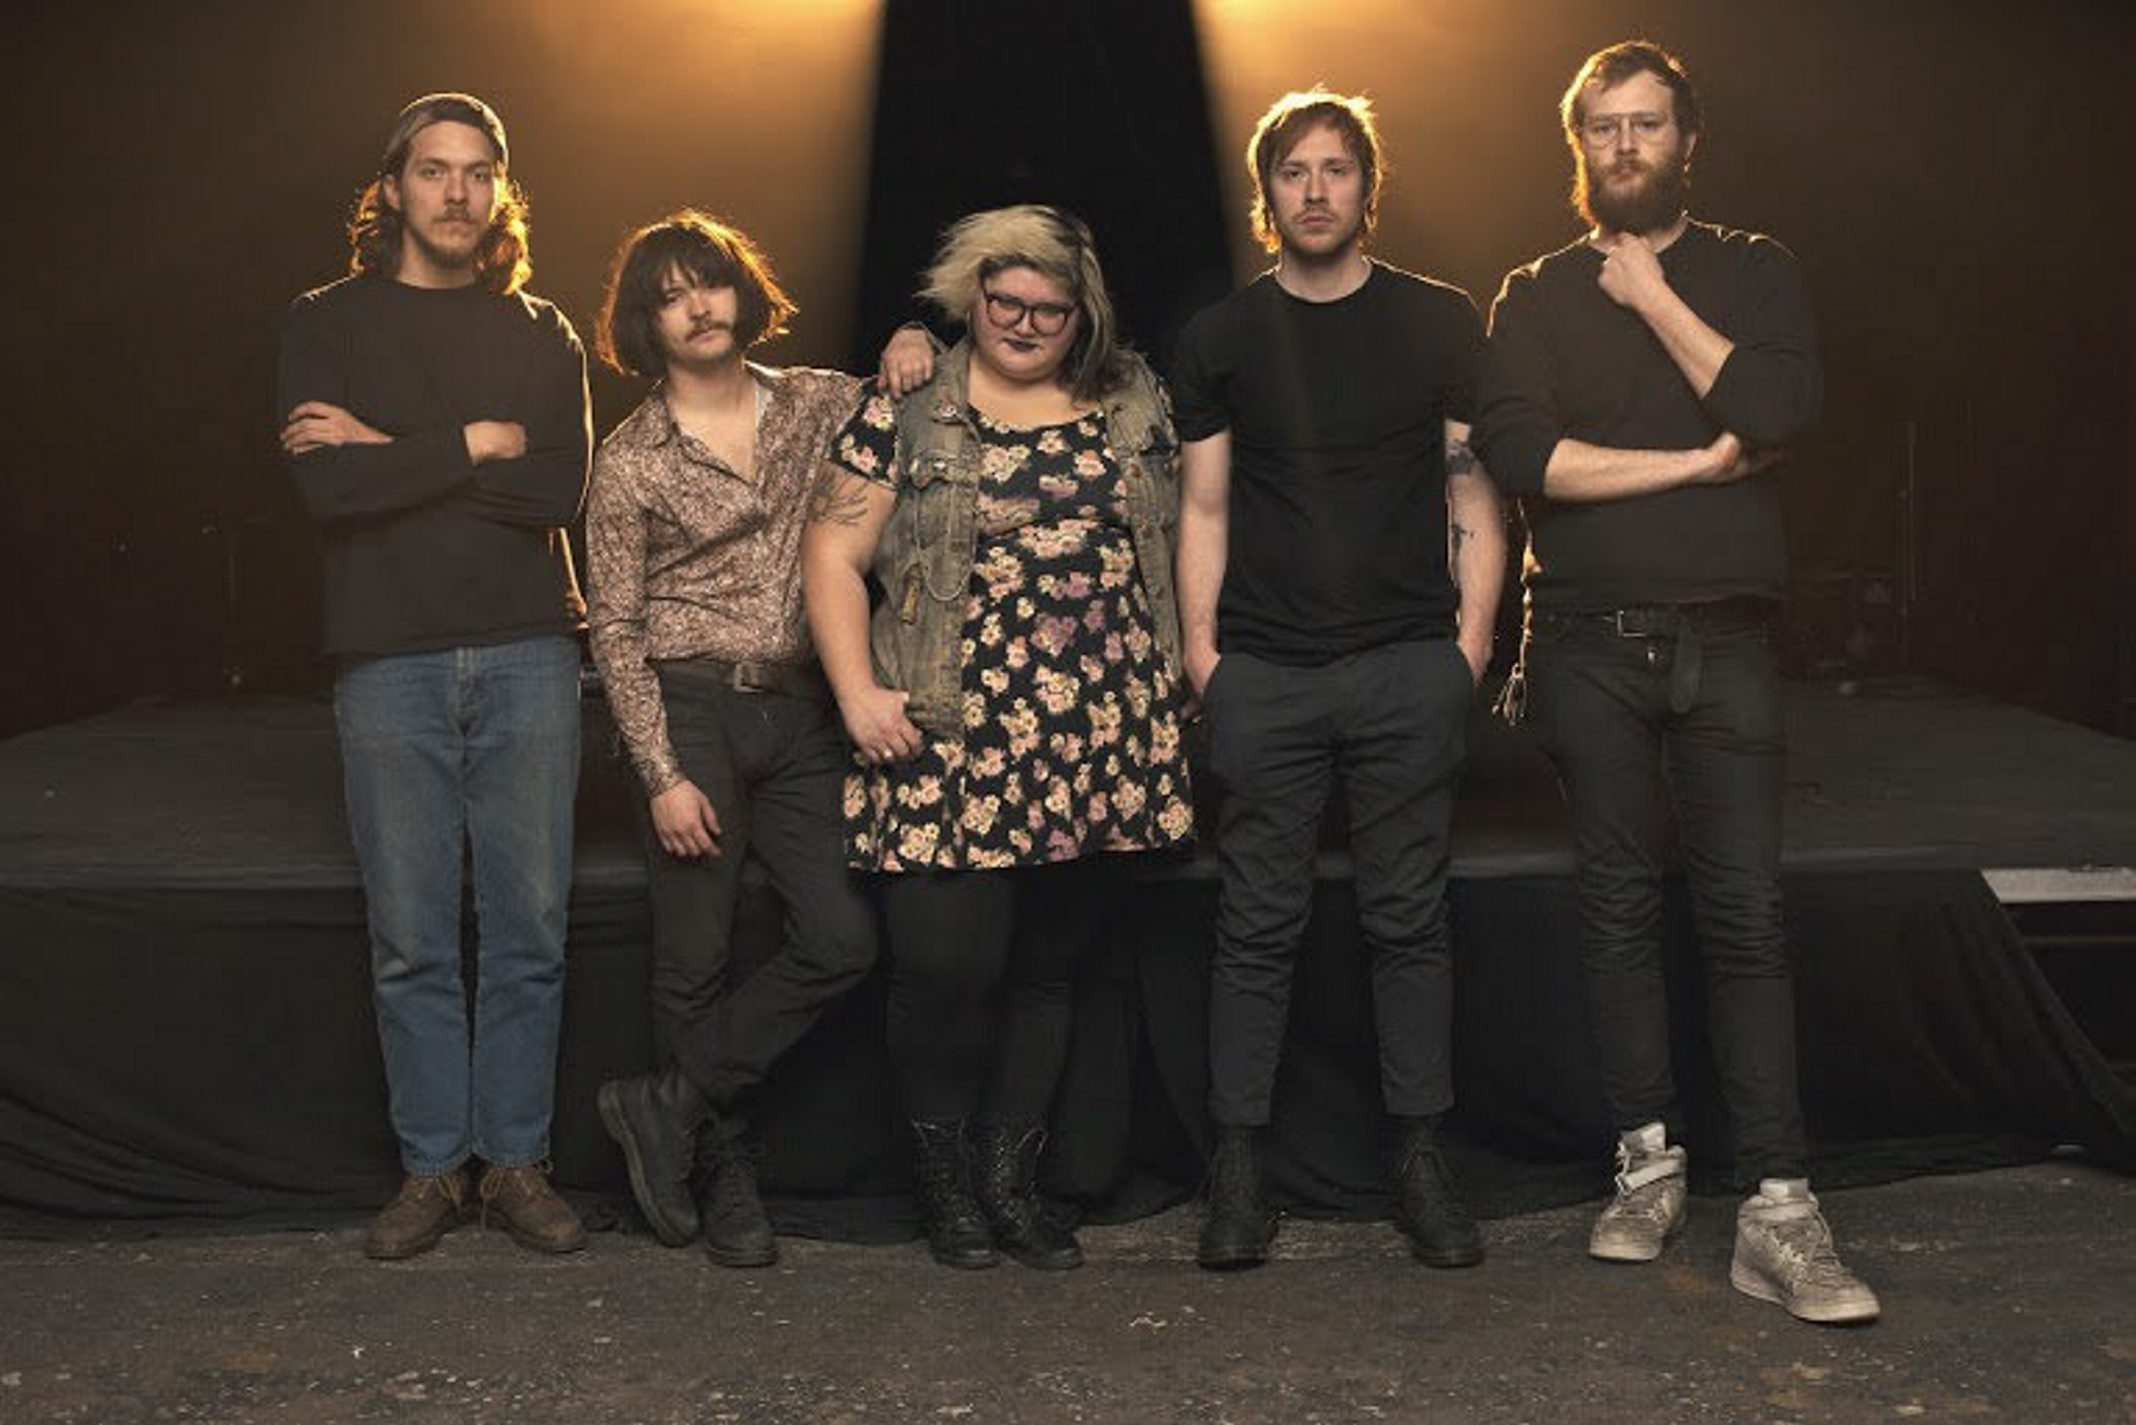 The Philadelphia punk outfit Sheer Mag plays April 3 in Mohawk Place.